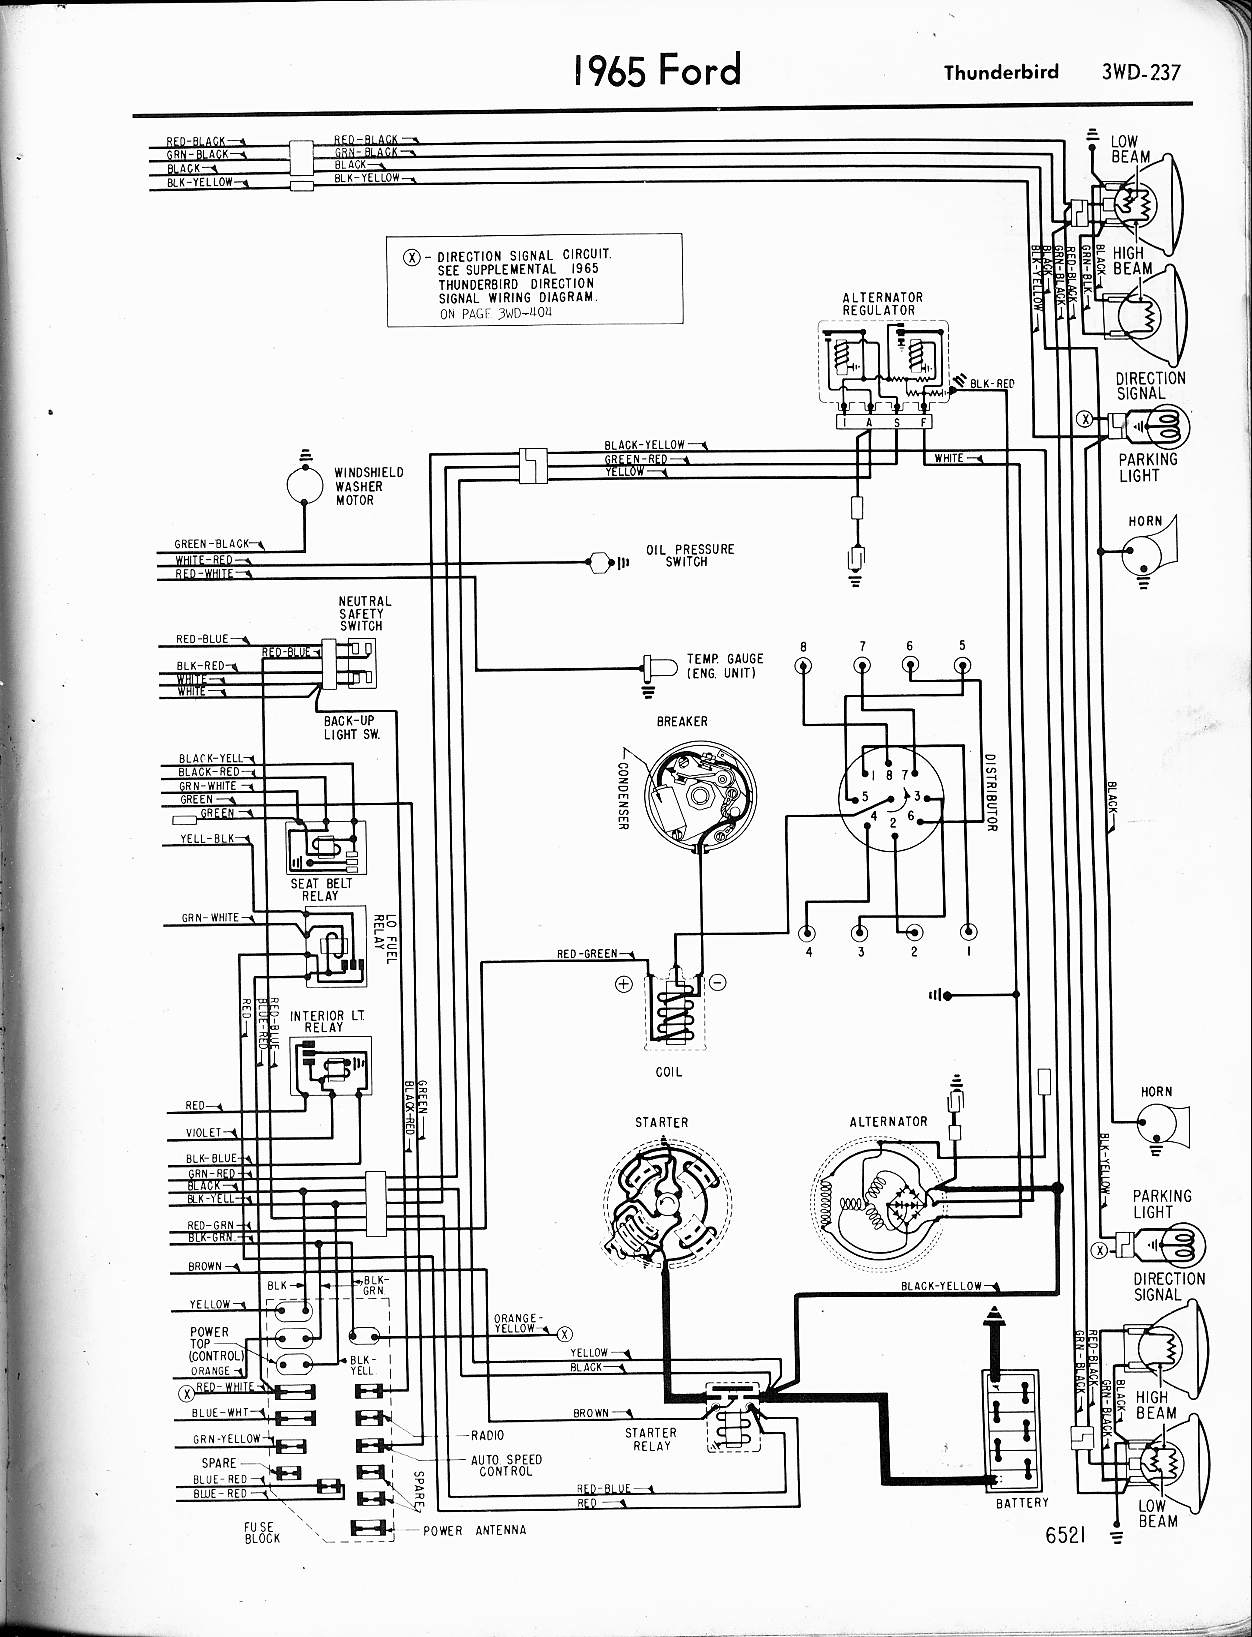 lincoln sae 300 wiring diagram Collection-1965 Thunderbird right 1-r